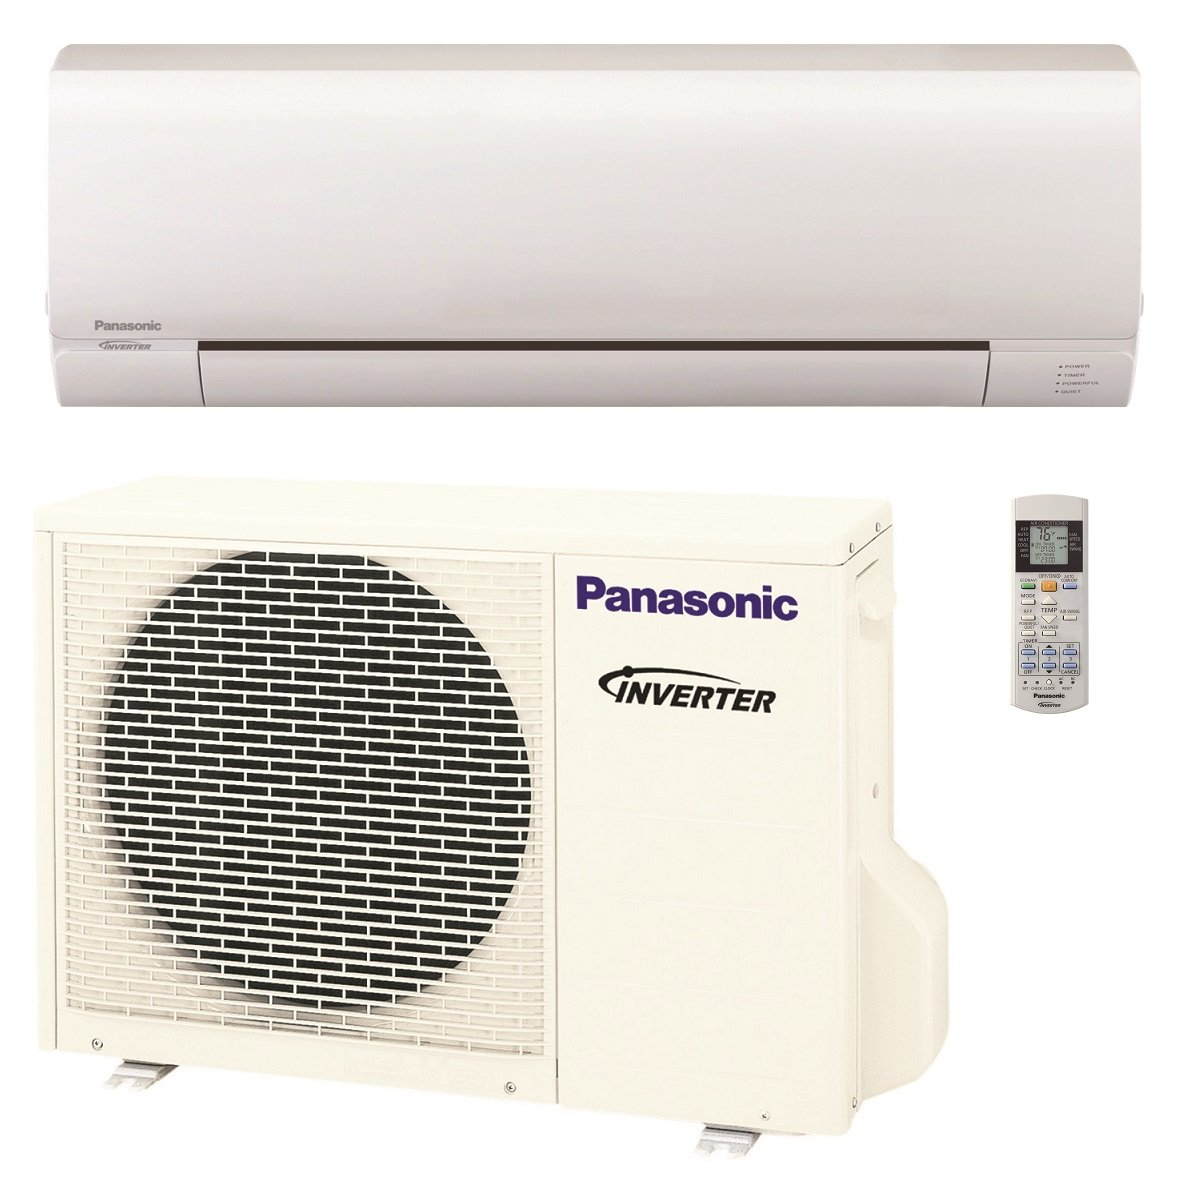 Panasonic 12,000 BTU Ductless Mini Split Air Conditioning and Heating System, Indoor and Outdoor Set with Wireless Remote (208/230V)